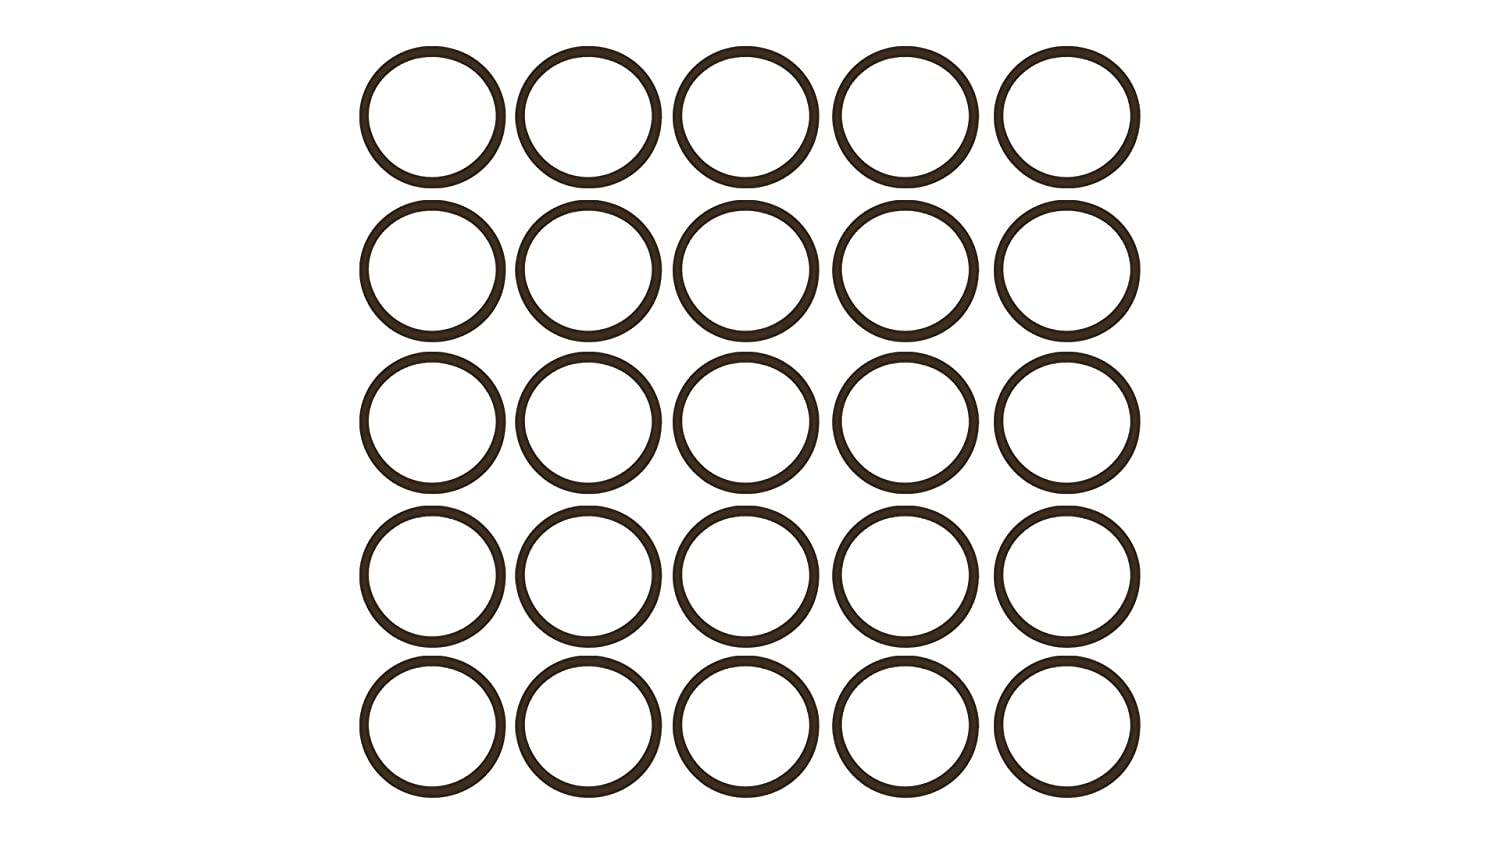 Sterling Seal OR75BRNVI021X25 021 75D O-Ring, FKM/Viton, Brown (Pack of 25)